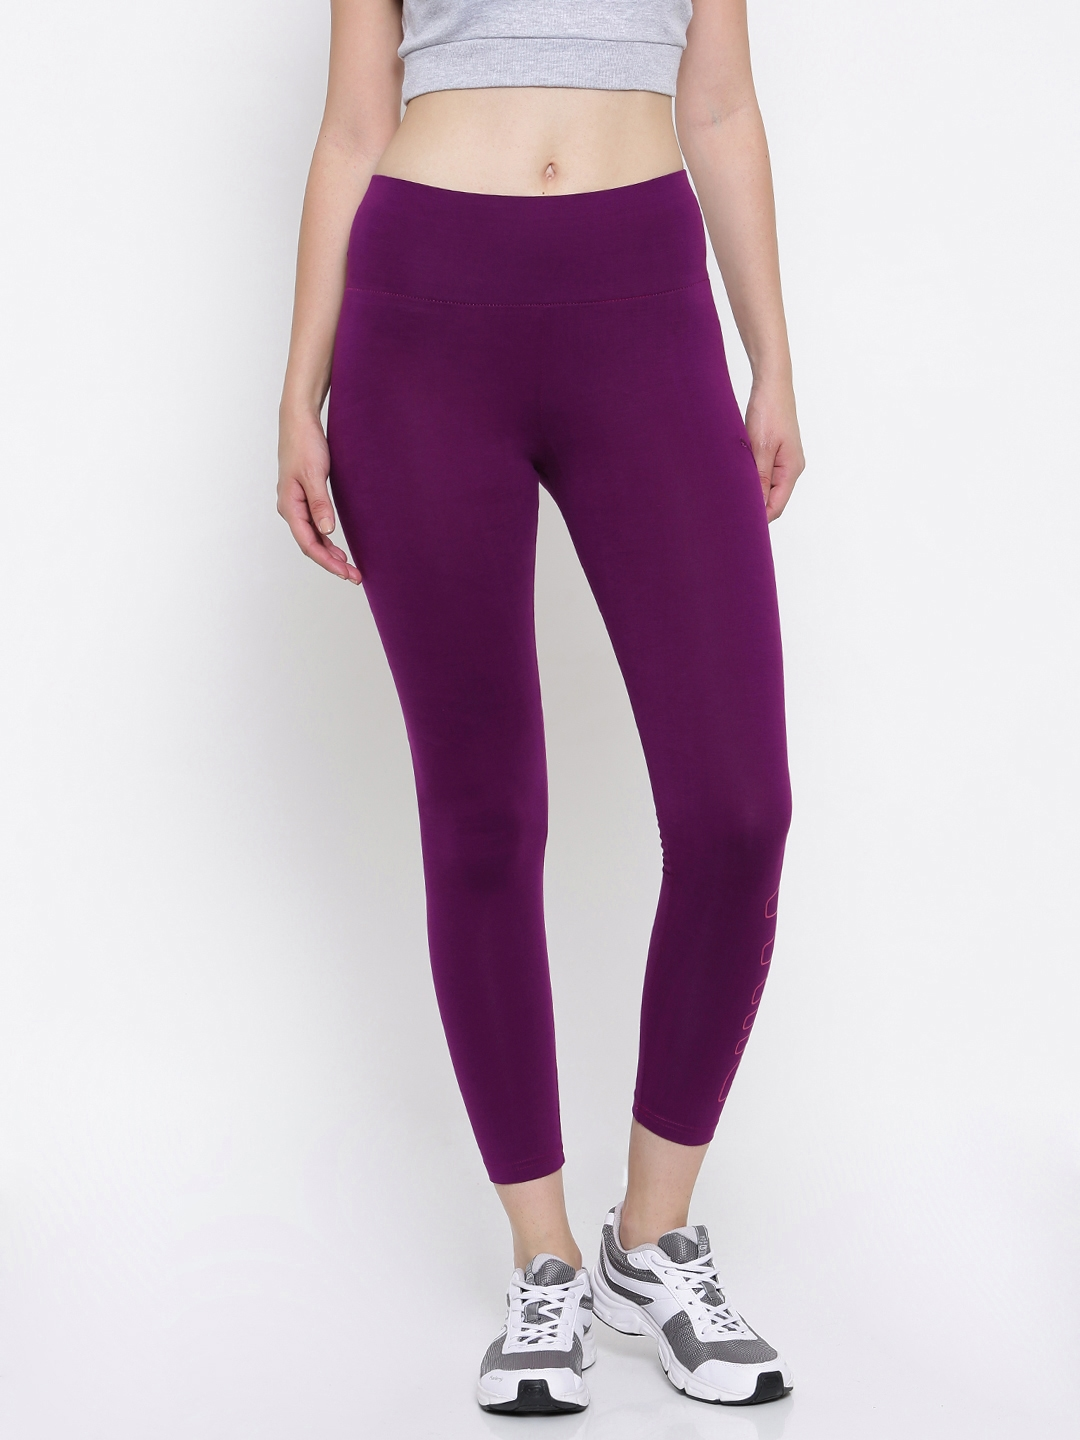 20248716e800 Buy Puma Women Purple ATHLETIC Leggings Tights - Tights for Women ...